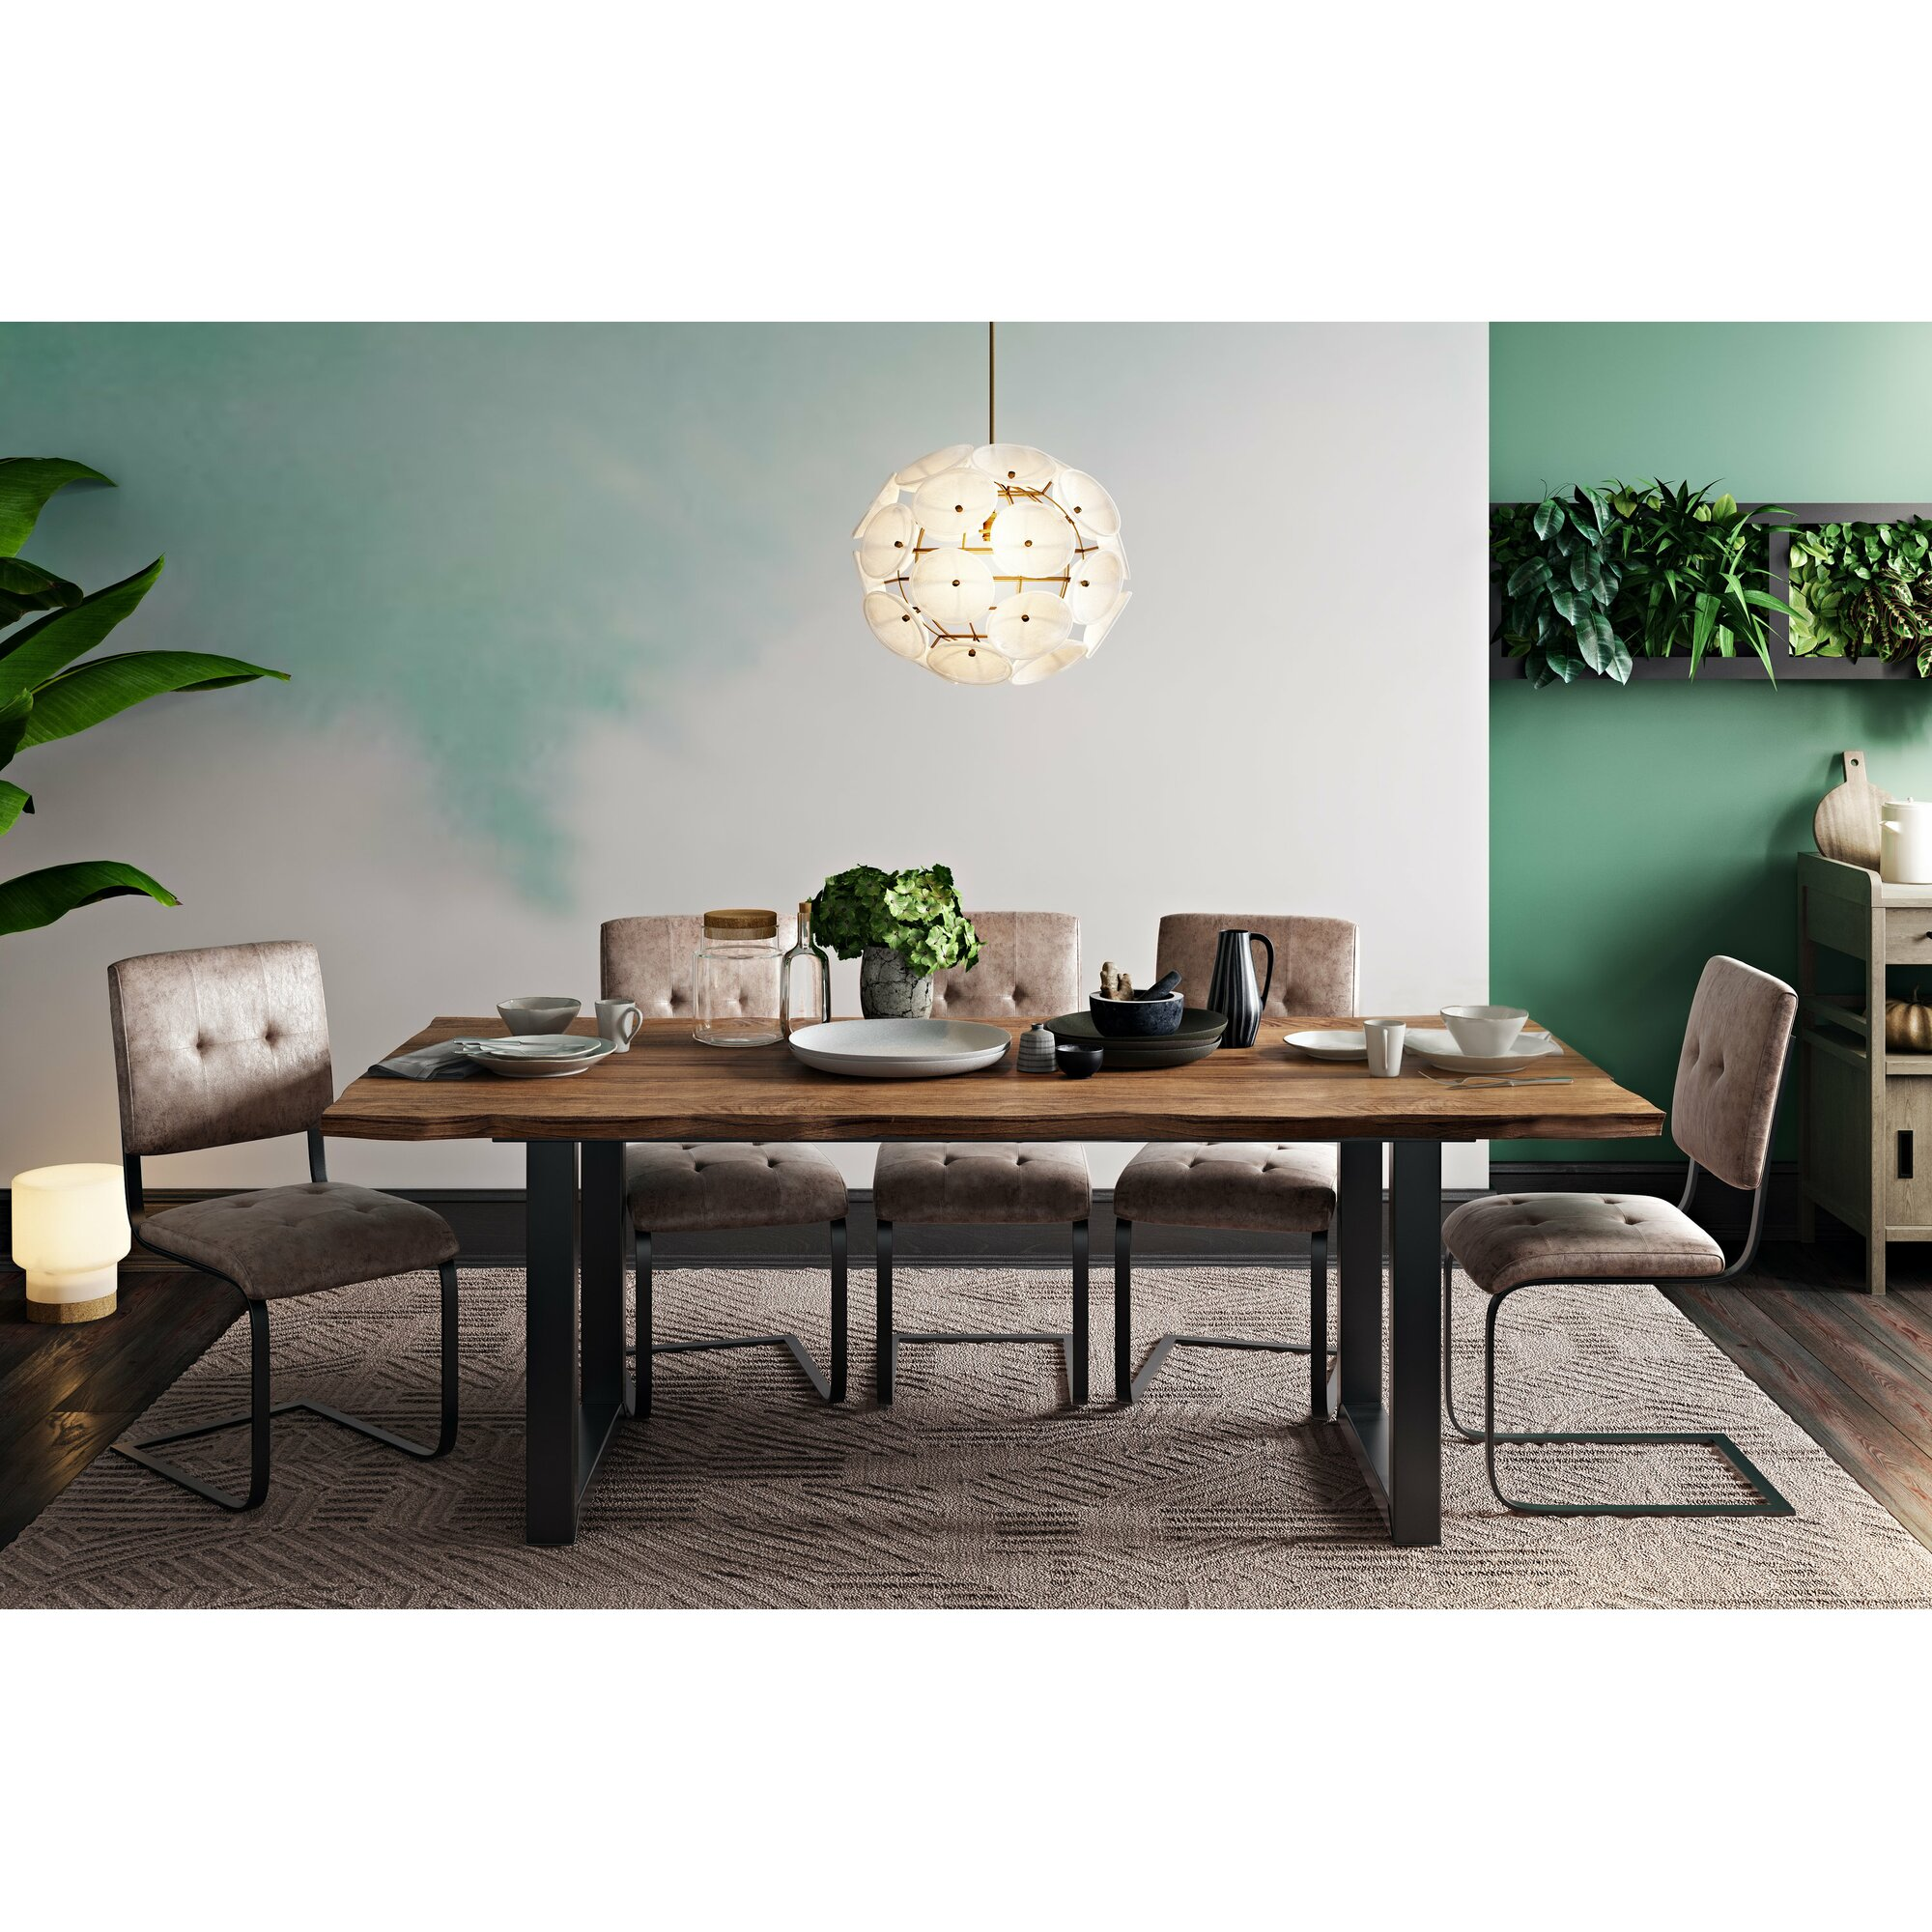 awesome dining room sets austin tx ideas ltrevents com awesome dining room sets austin tx ideas ltrevents com